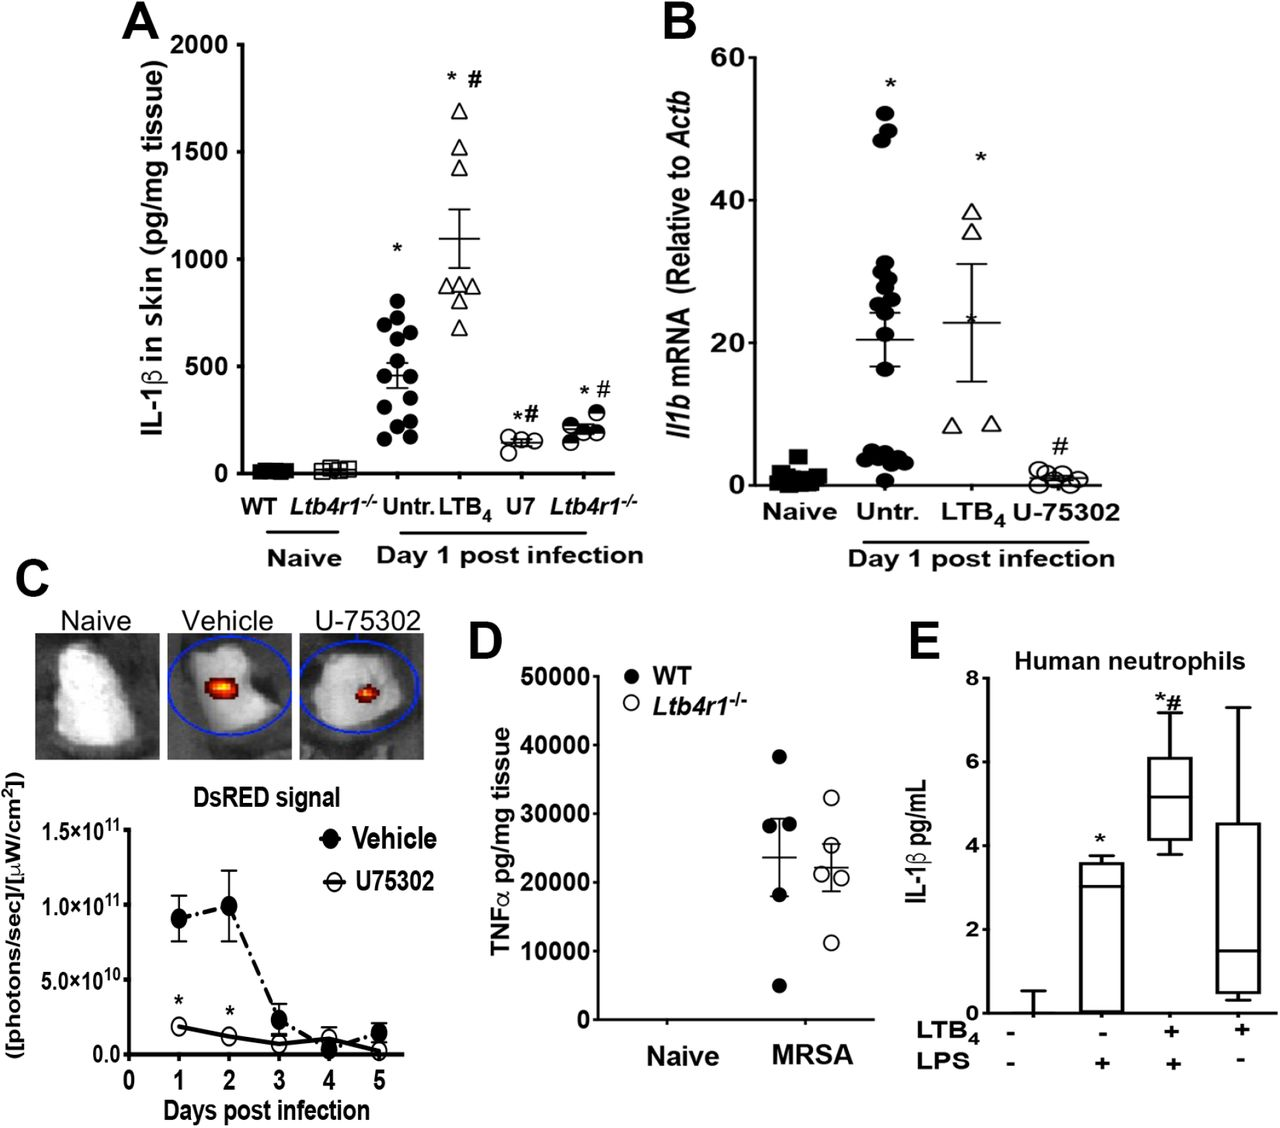 LTB 4 is required for IL-1β production. A) Quantification of IL-1β and B) Il1b mRNA expression in the skin of <t>C57BL/6,</t> Ltb4r1 −/− , C57BL/6 treated with a topical ointment containing LTB 4 or C57BL/6 treated with a topical ointment containing BLT1 antagonist U-75302 24h after MRSA infection. C) IVIS scanning of pIL1DsRed mice treated with a topical ointment containing BLT1 antagonist U-75032 or vehicle. TNF-α quantification in D) peritoneal macrophages treated with LTB 4 or BLT1 antagonist before MRSA infection and E) skin biopsy from wild-type (WT) or Ltb4r1 −/− mice after 24h MRSA infection. F) IL-1β quantification from human neutrophils isolated from healthy blood donors treated with LTB 4 and LPS. Data are the mean ± SEM of 3-10 mice. *p